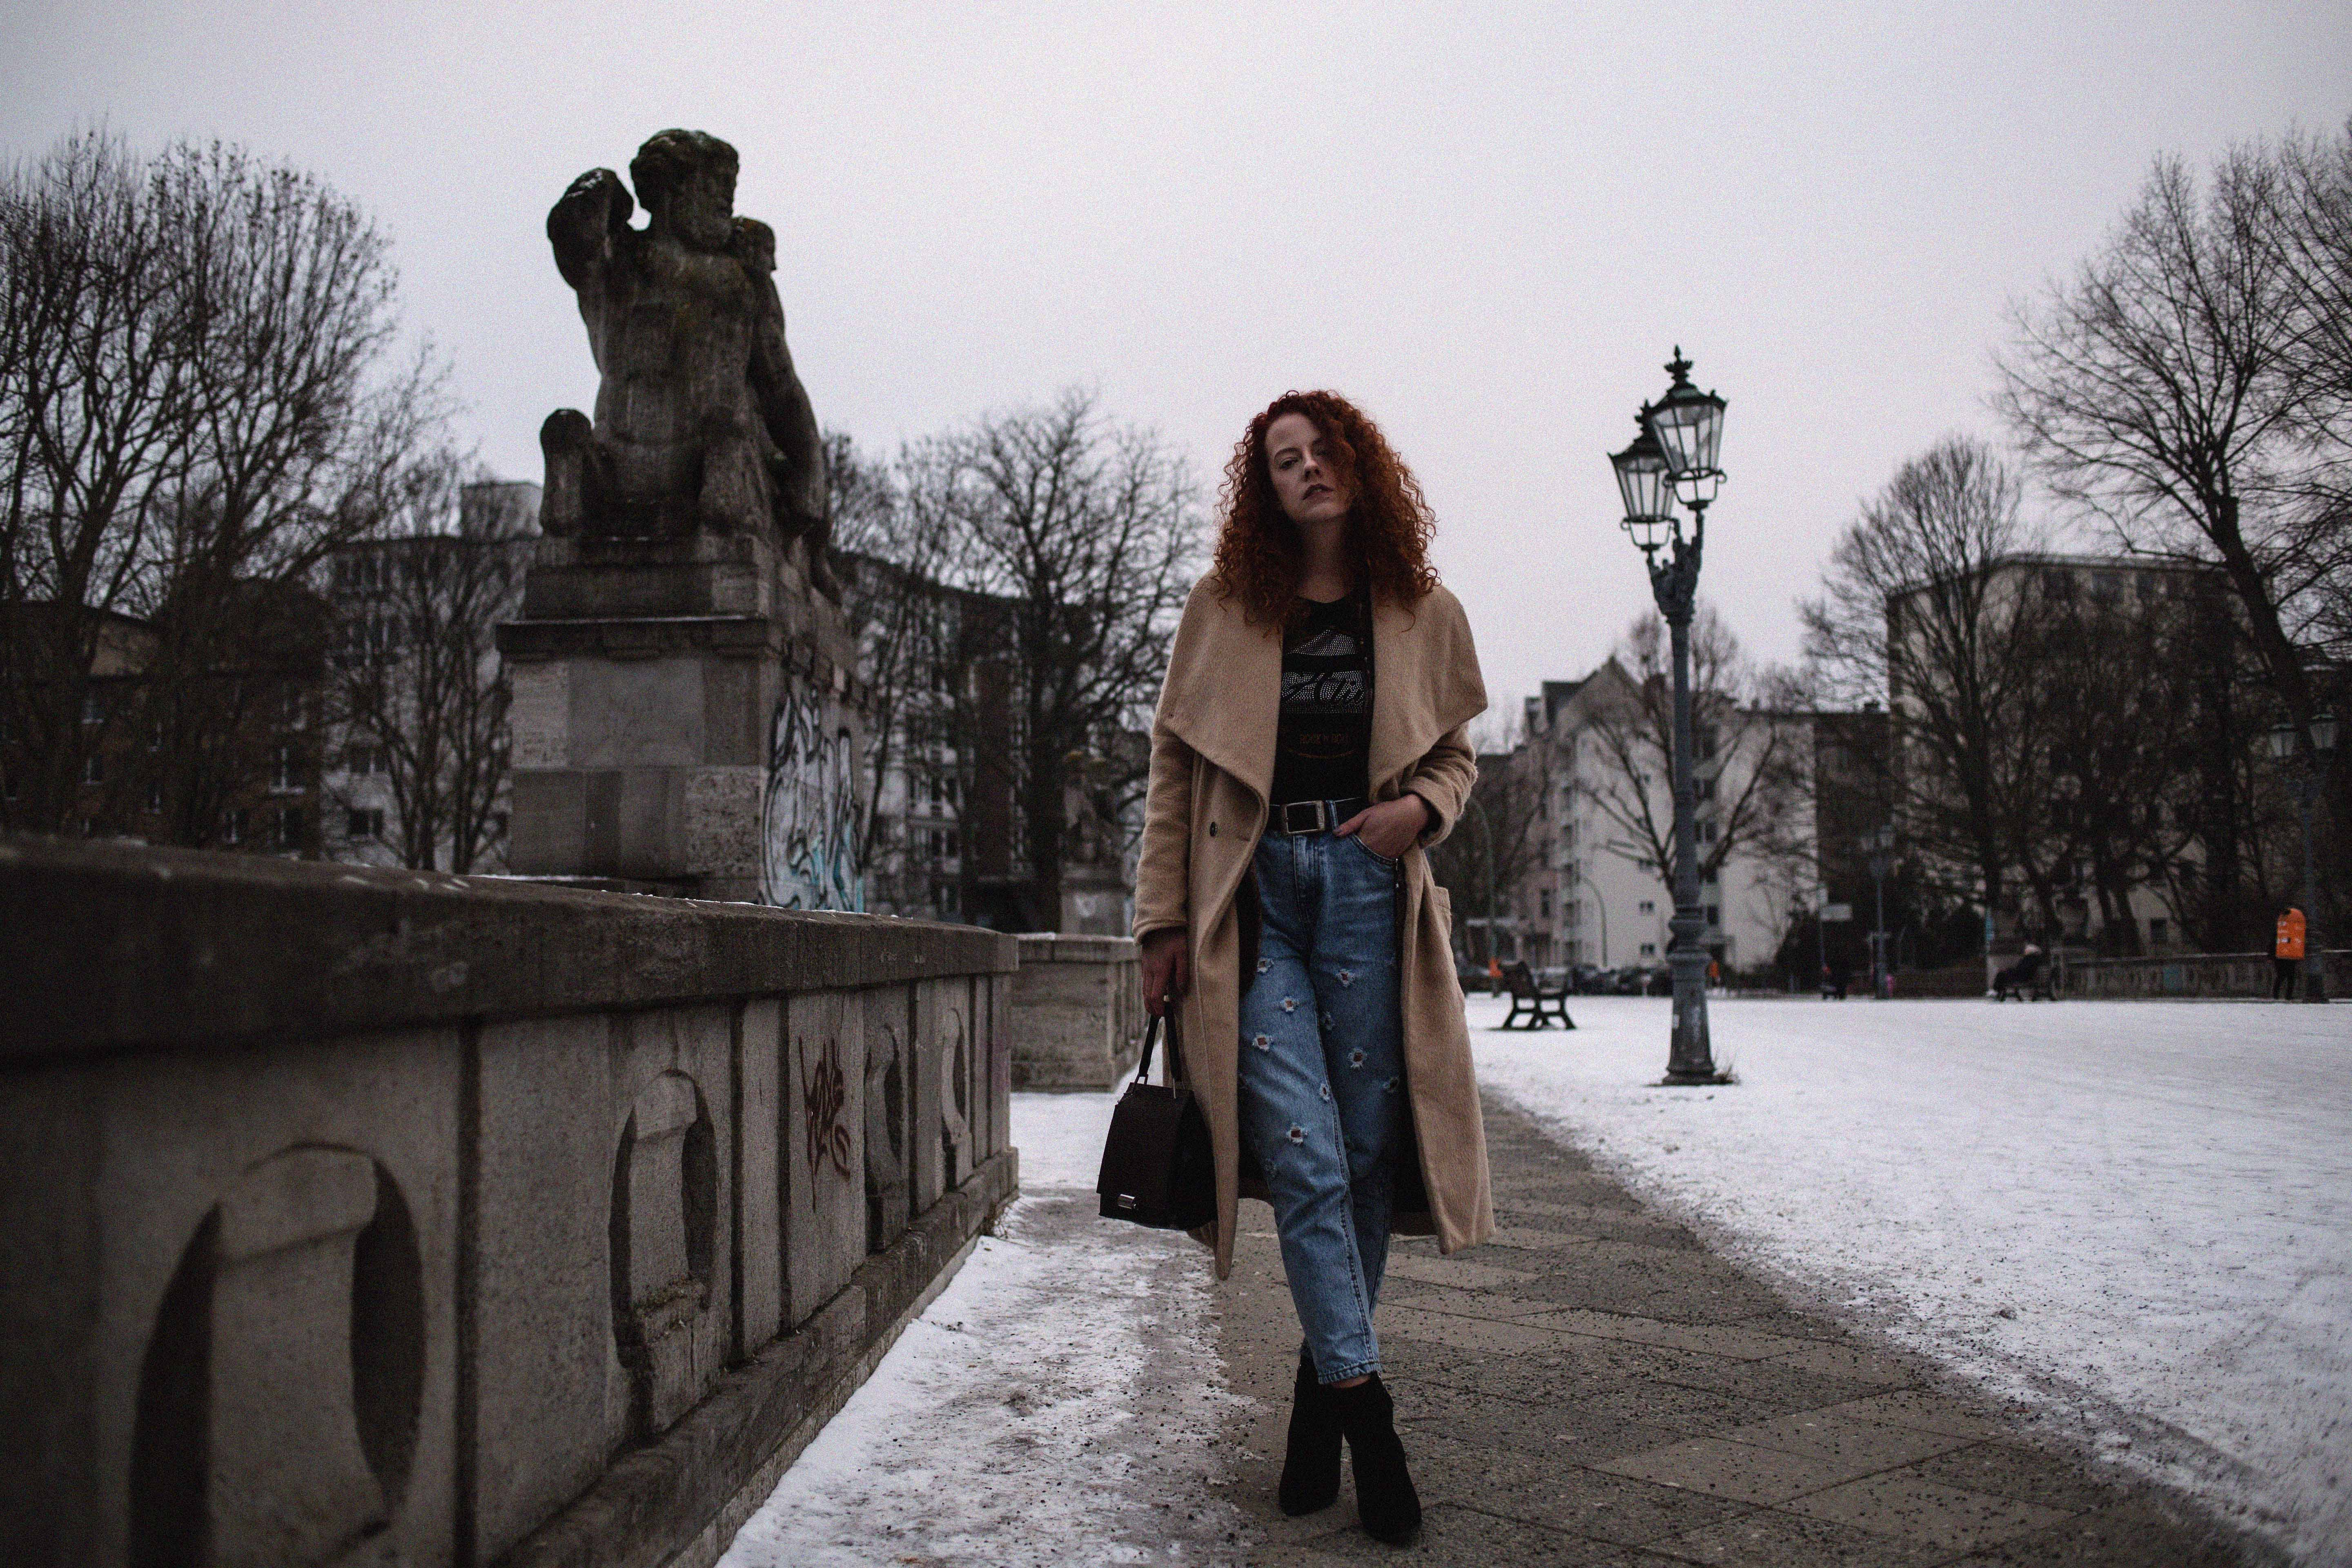 fashion week berlin mercedes benz mbfw outfit streetstyle inspiration blogger fashionblogger fashion mode looks look frankfurt blogger inspo deliah eckhardt the curled girl